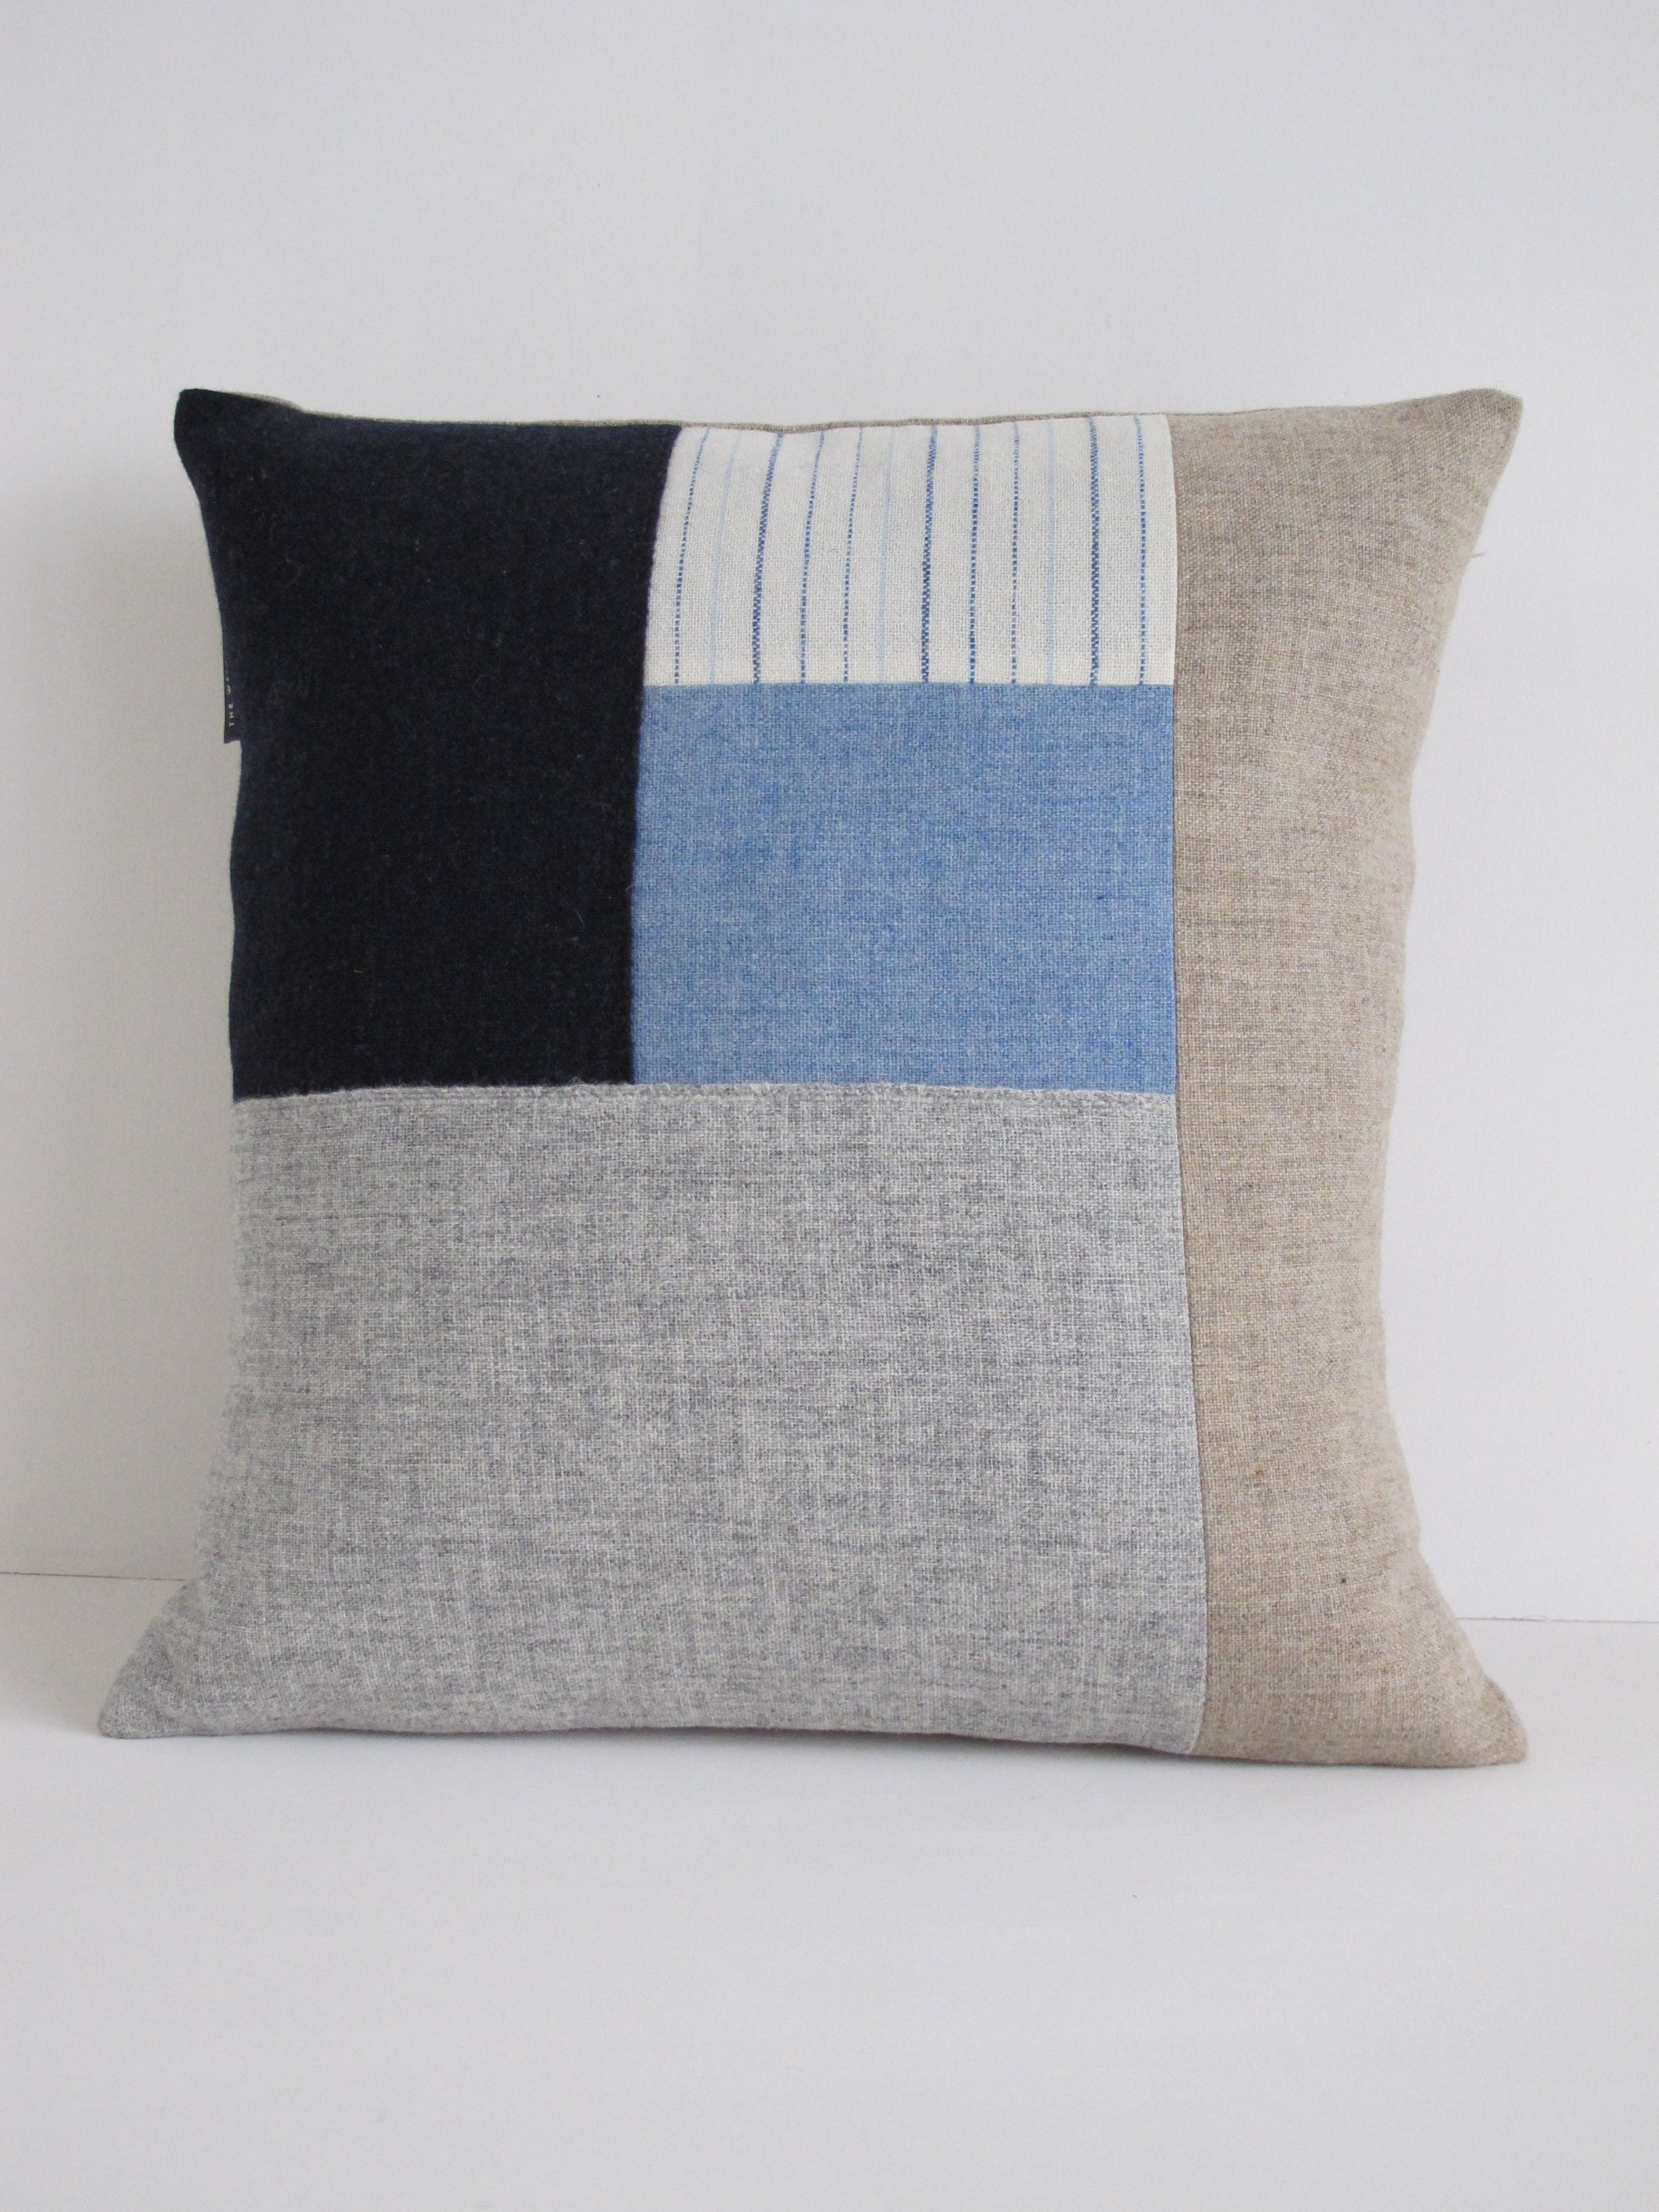 Patchwork Cushion LXII